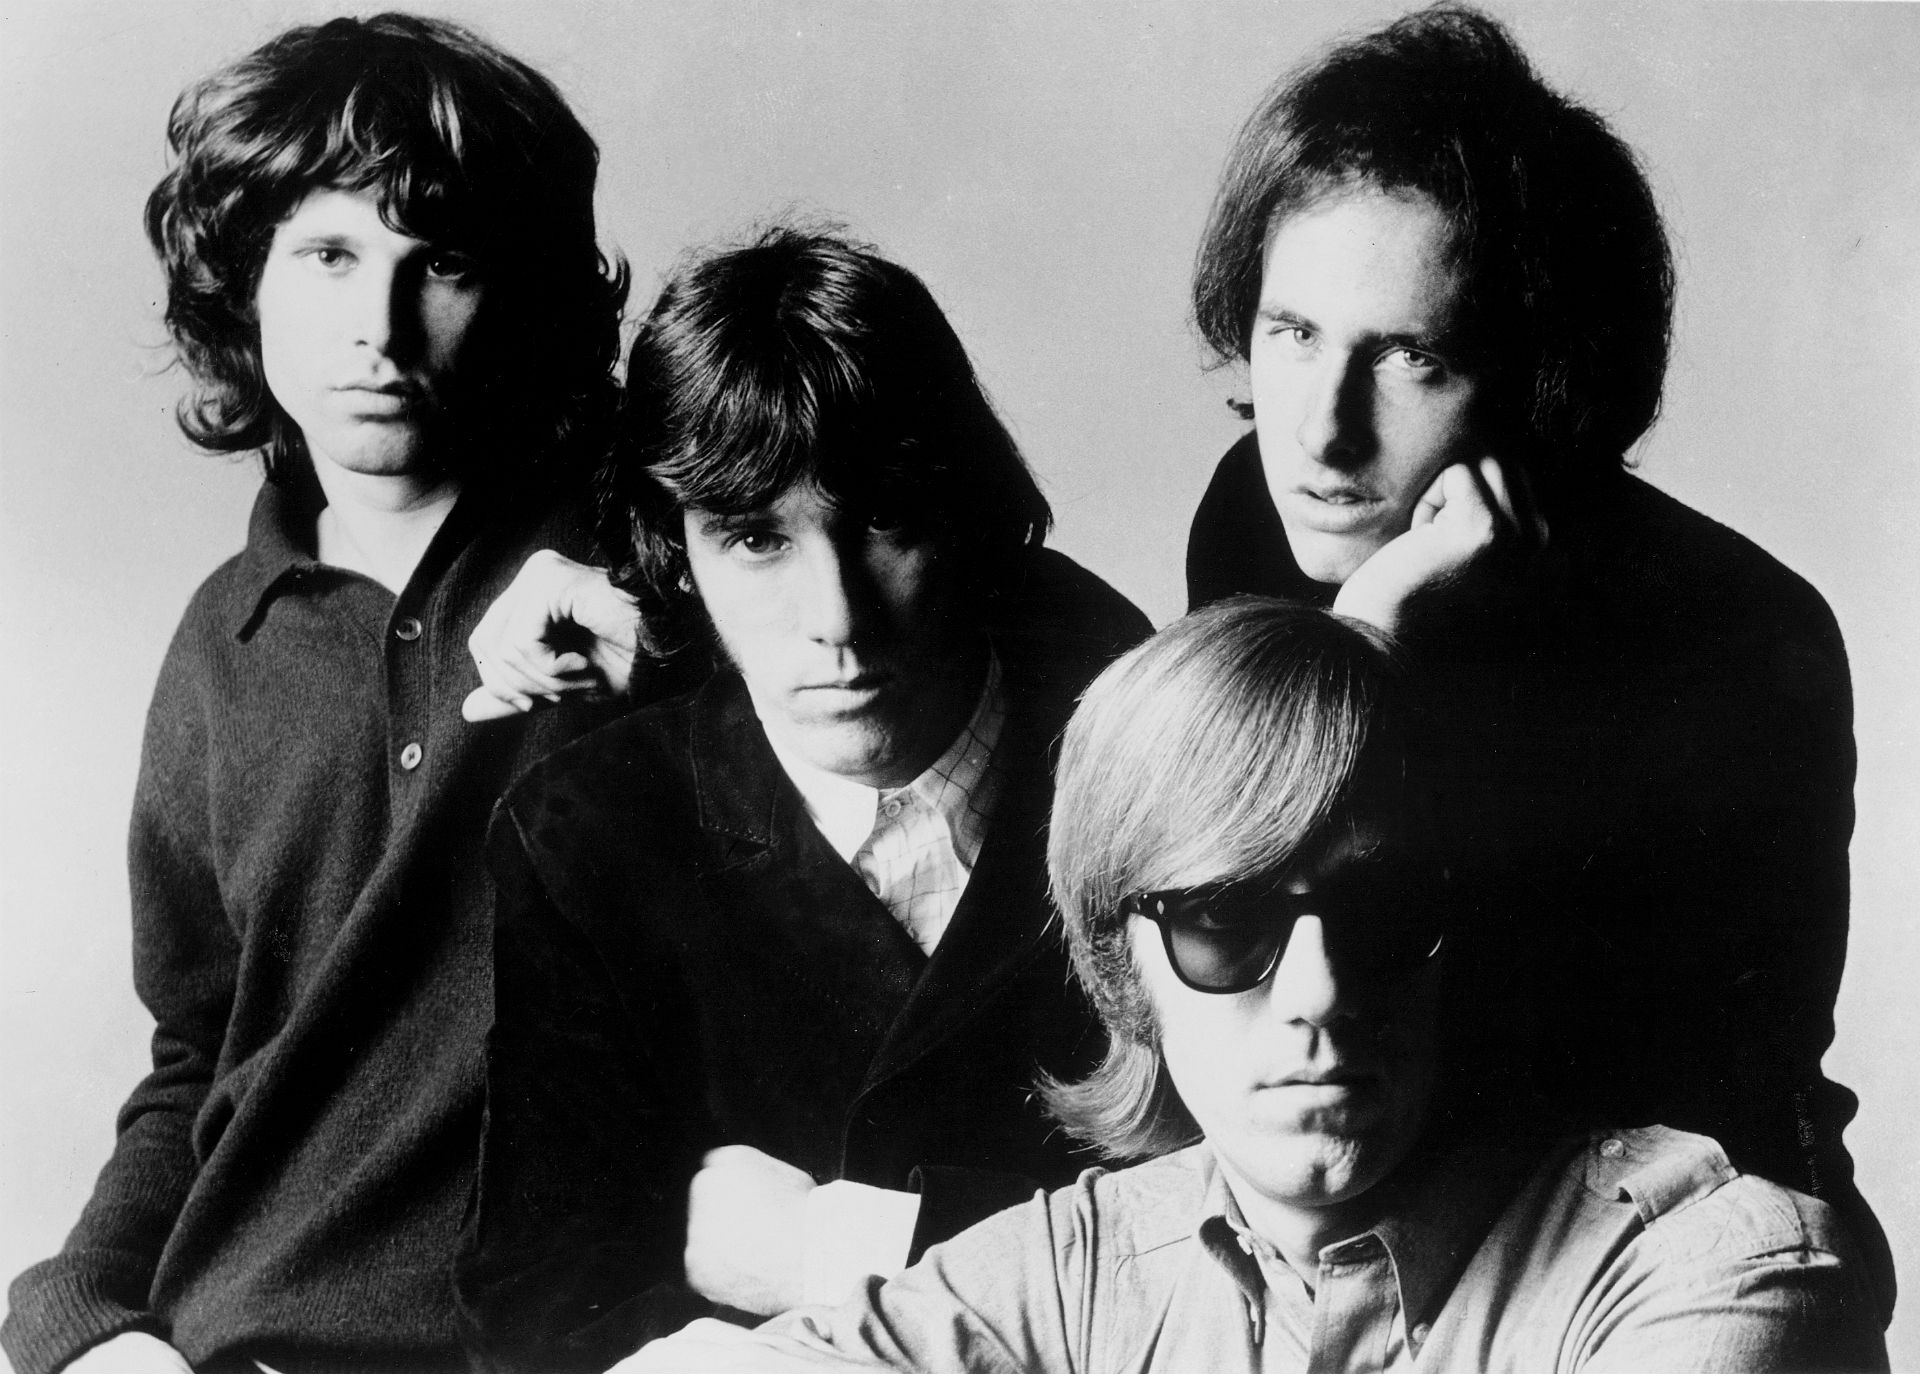 The Doors Images Jim Morrison HD Wallpaper And Background Photos 1920x1374